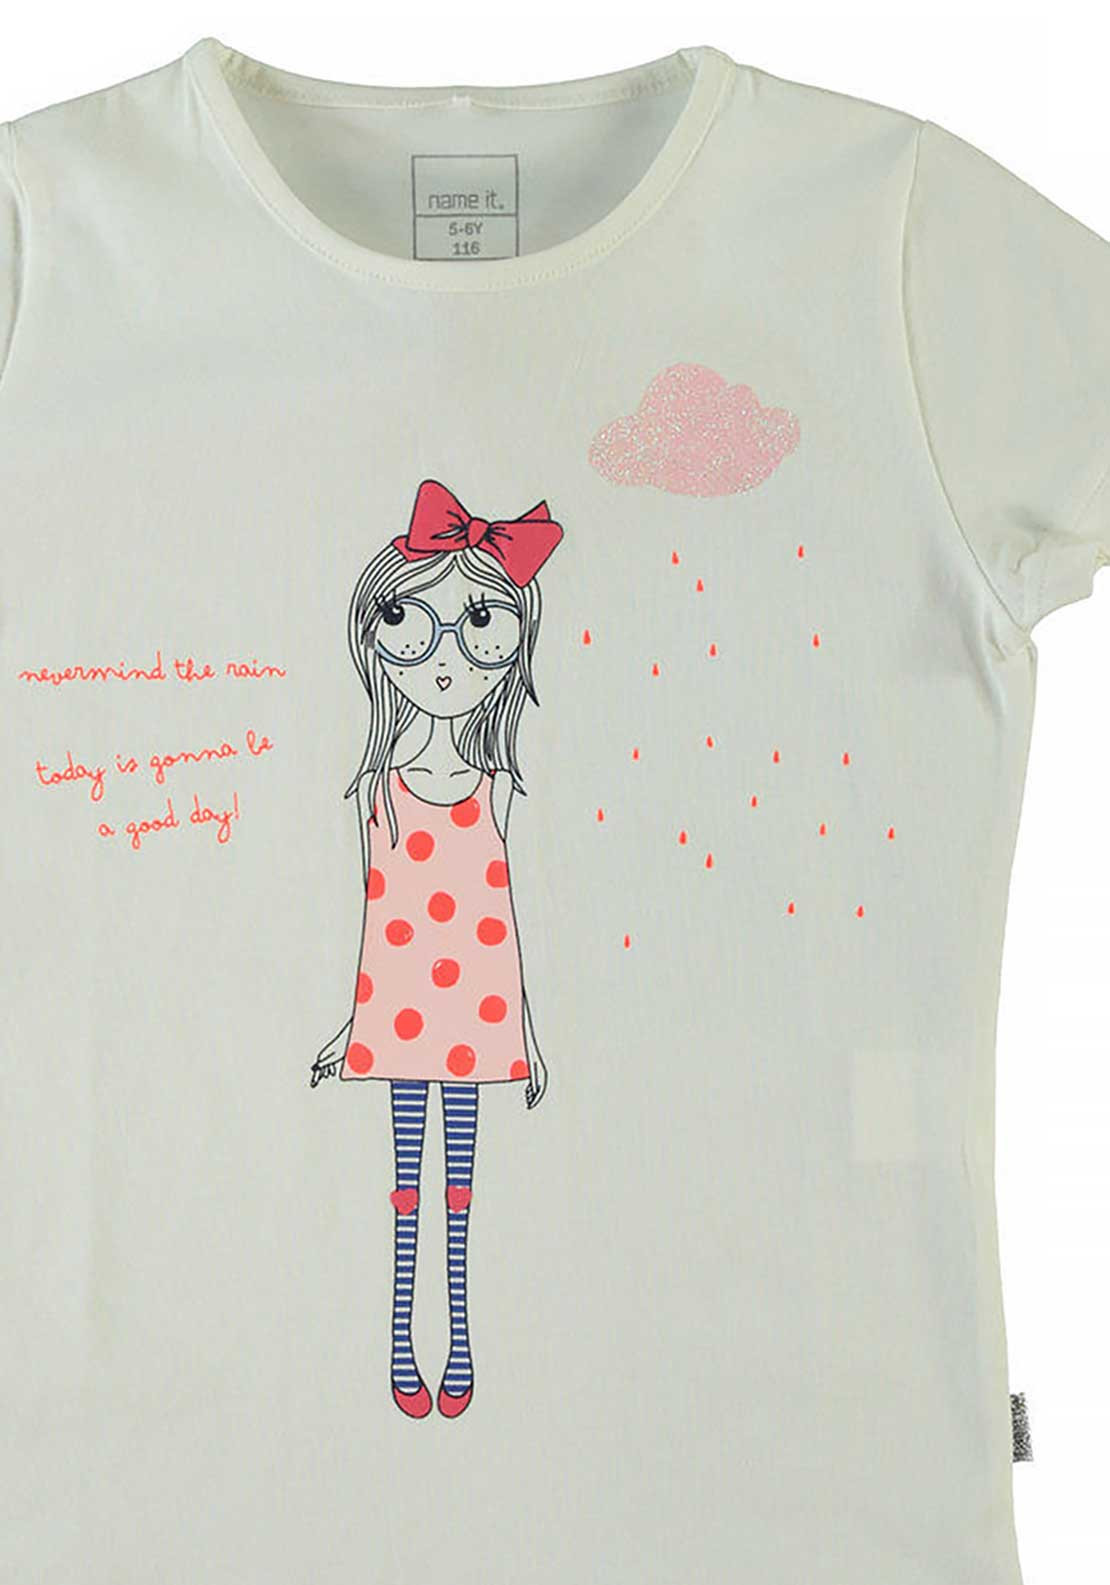 Name It Girls Graphic Print Top, Cloud Dancer